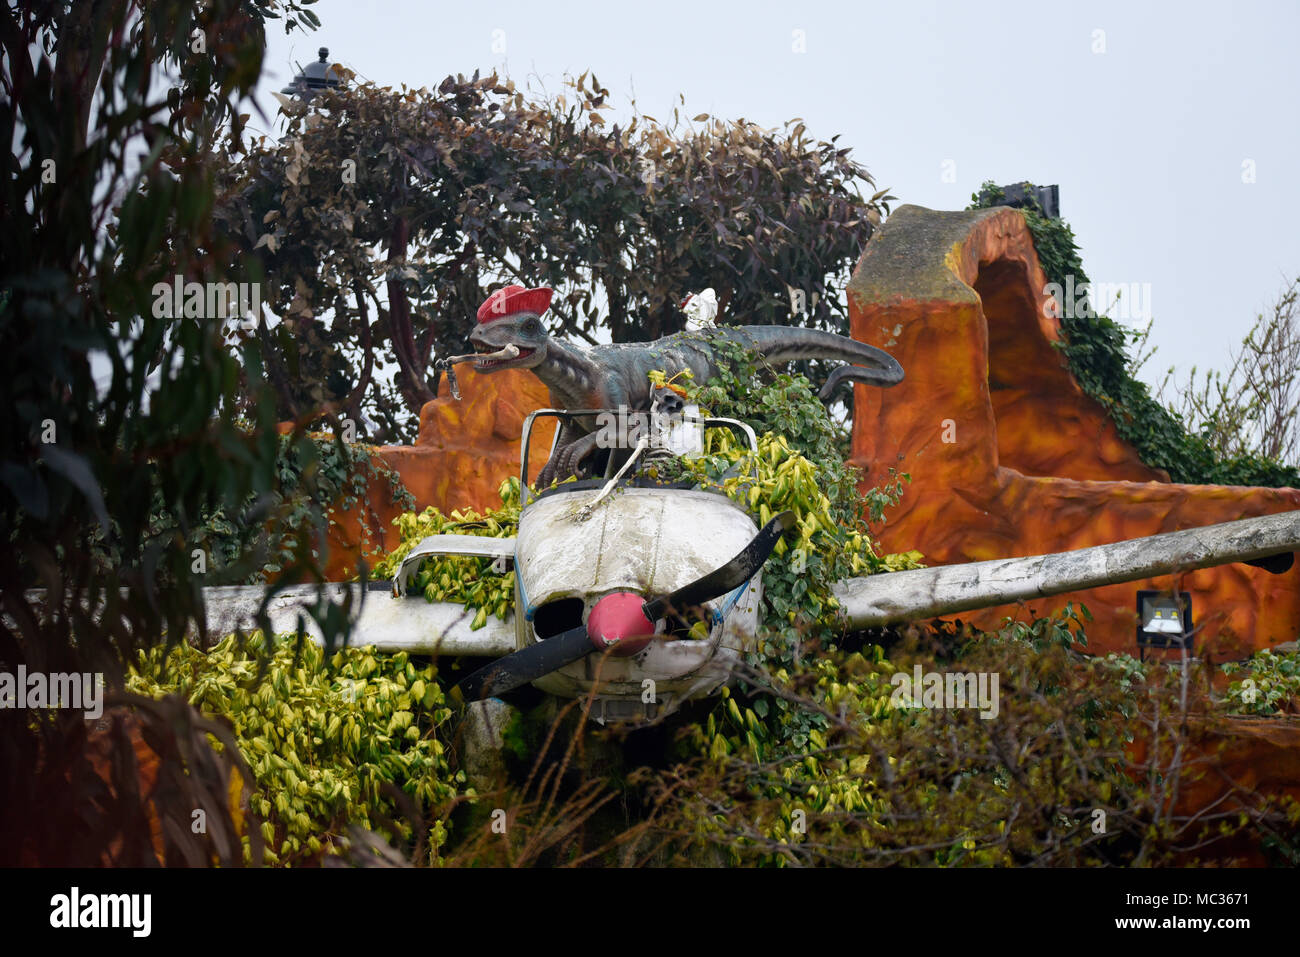 Gardan Gy80 160 Horizon G Azrx Plane Which Crashed At Sandtoft